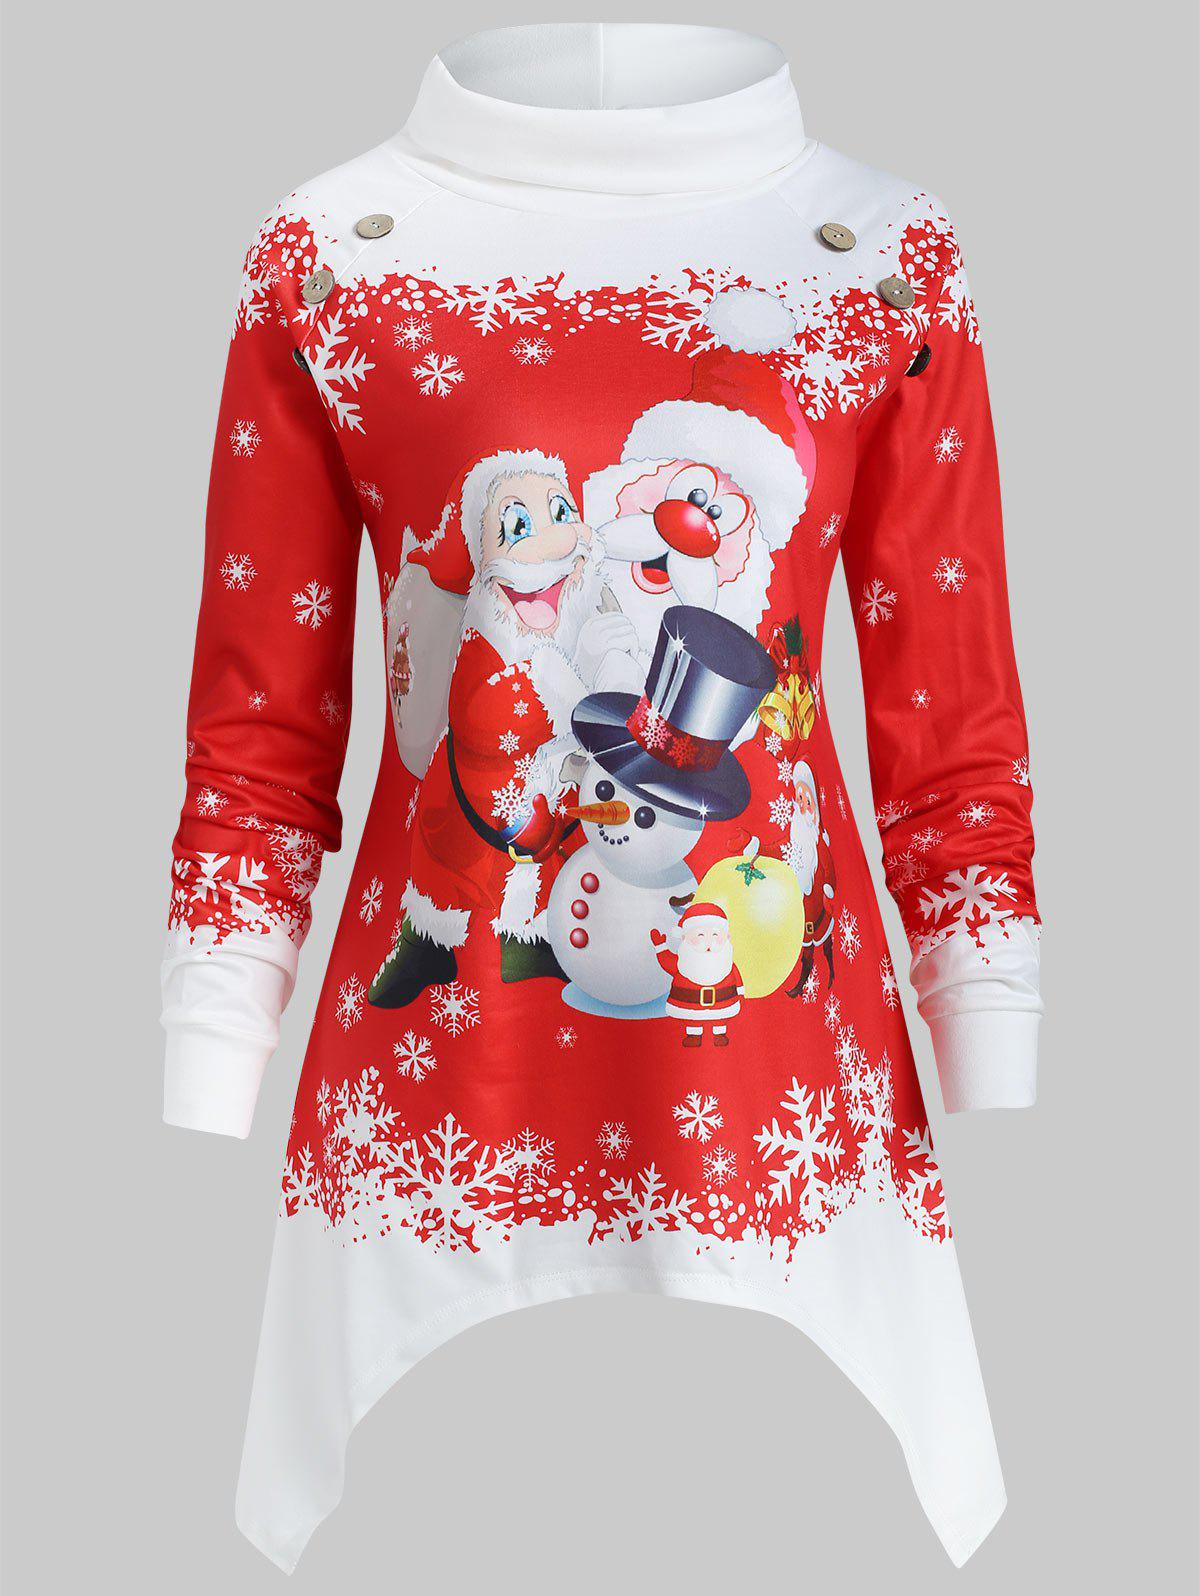 Shop Asymmetrical Plus Size Christmas Santa Claus Print Sweatshirt